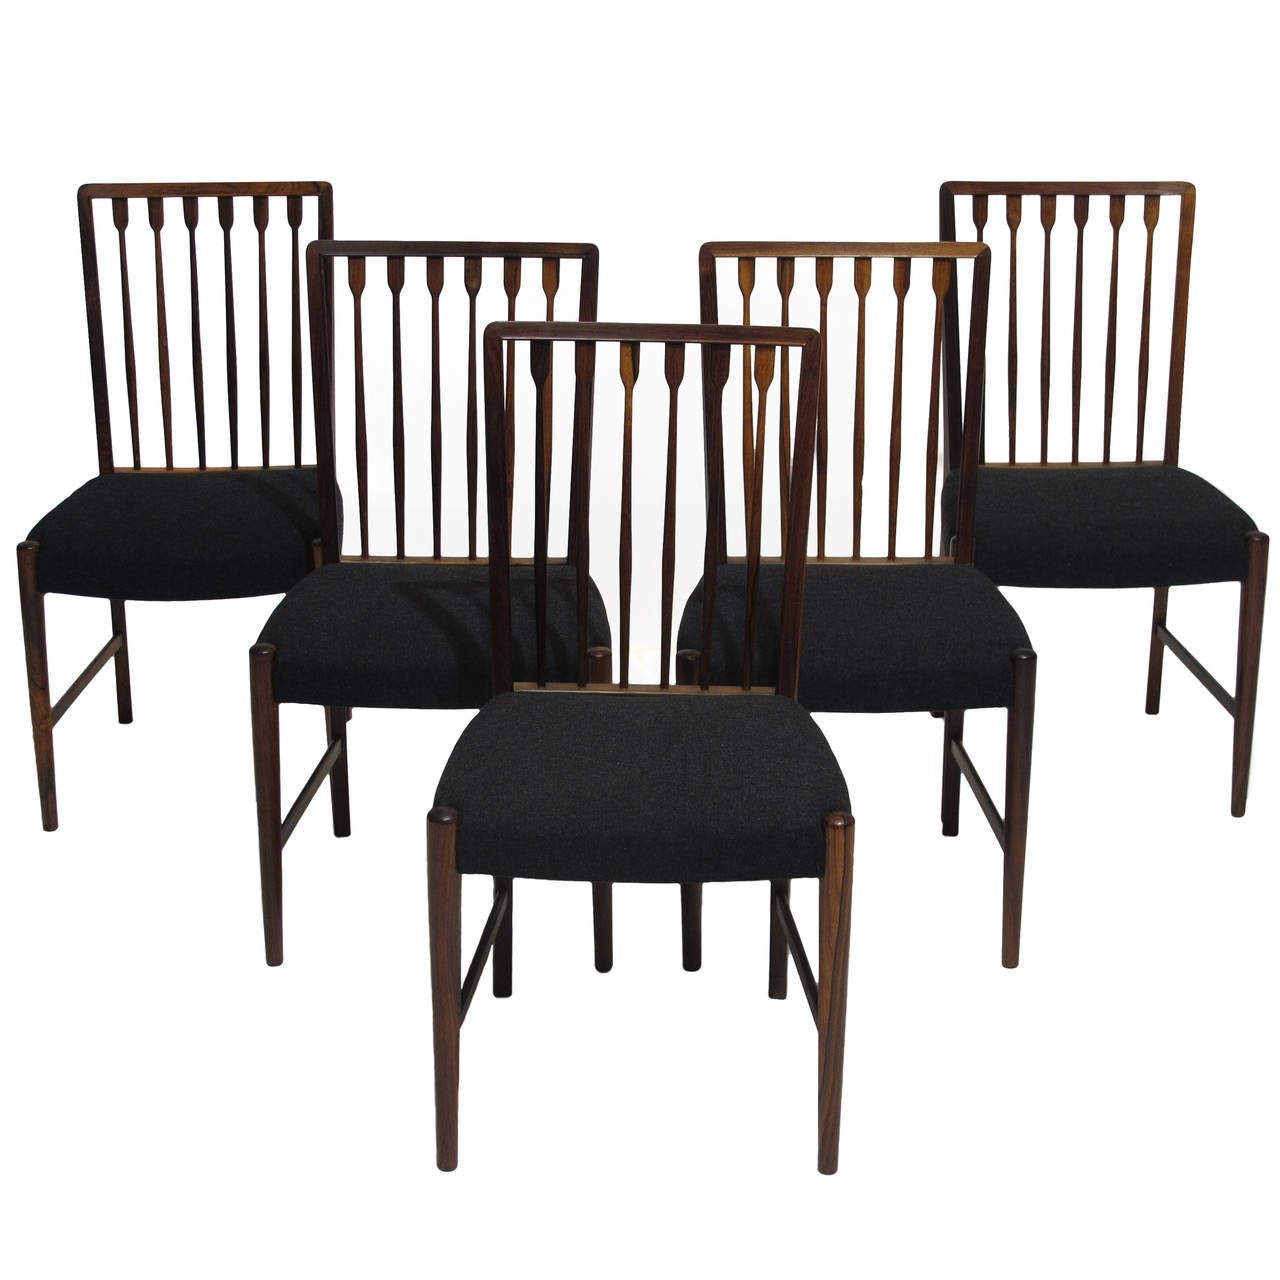 Georg kofoed danish rosewood dining chairs at 1stdibs - Rosewood dining room furniture ...